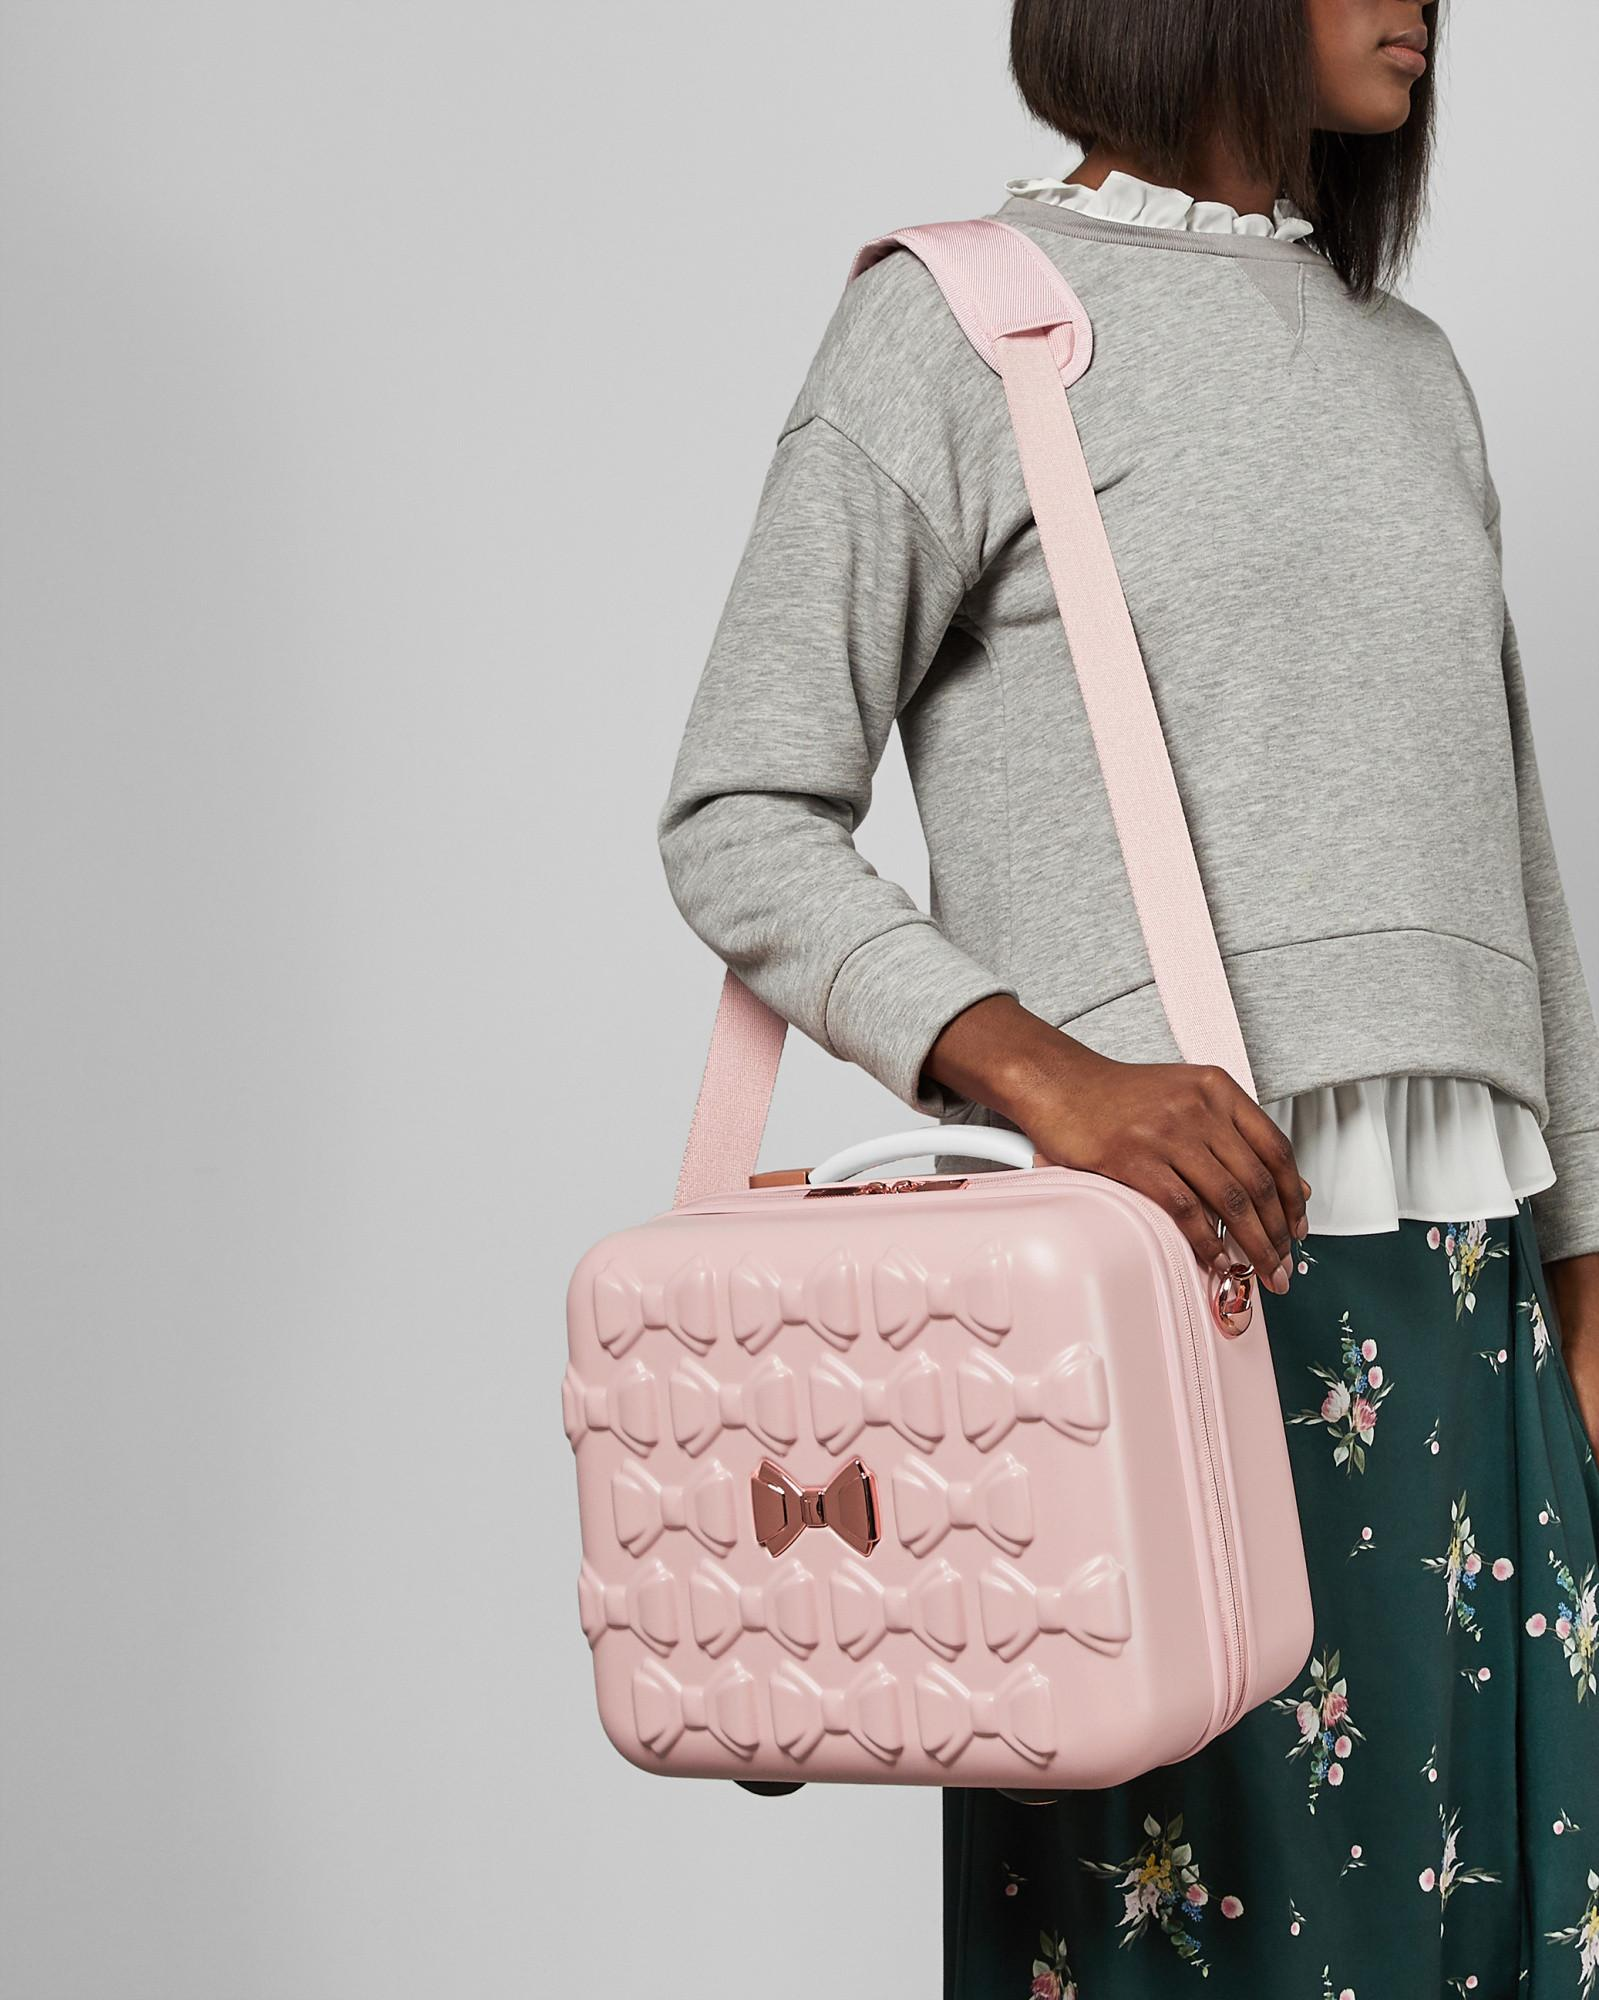 3a8bb5a6b0770 Lyst - Ted Baker Tbw0204 Bow Detail Vanity Case in Pink